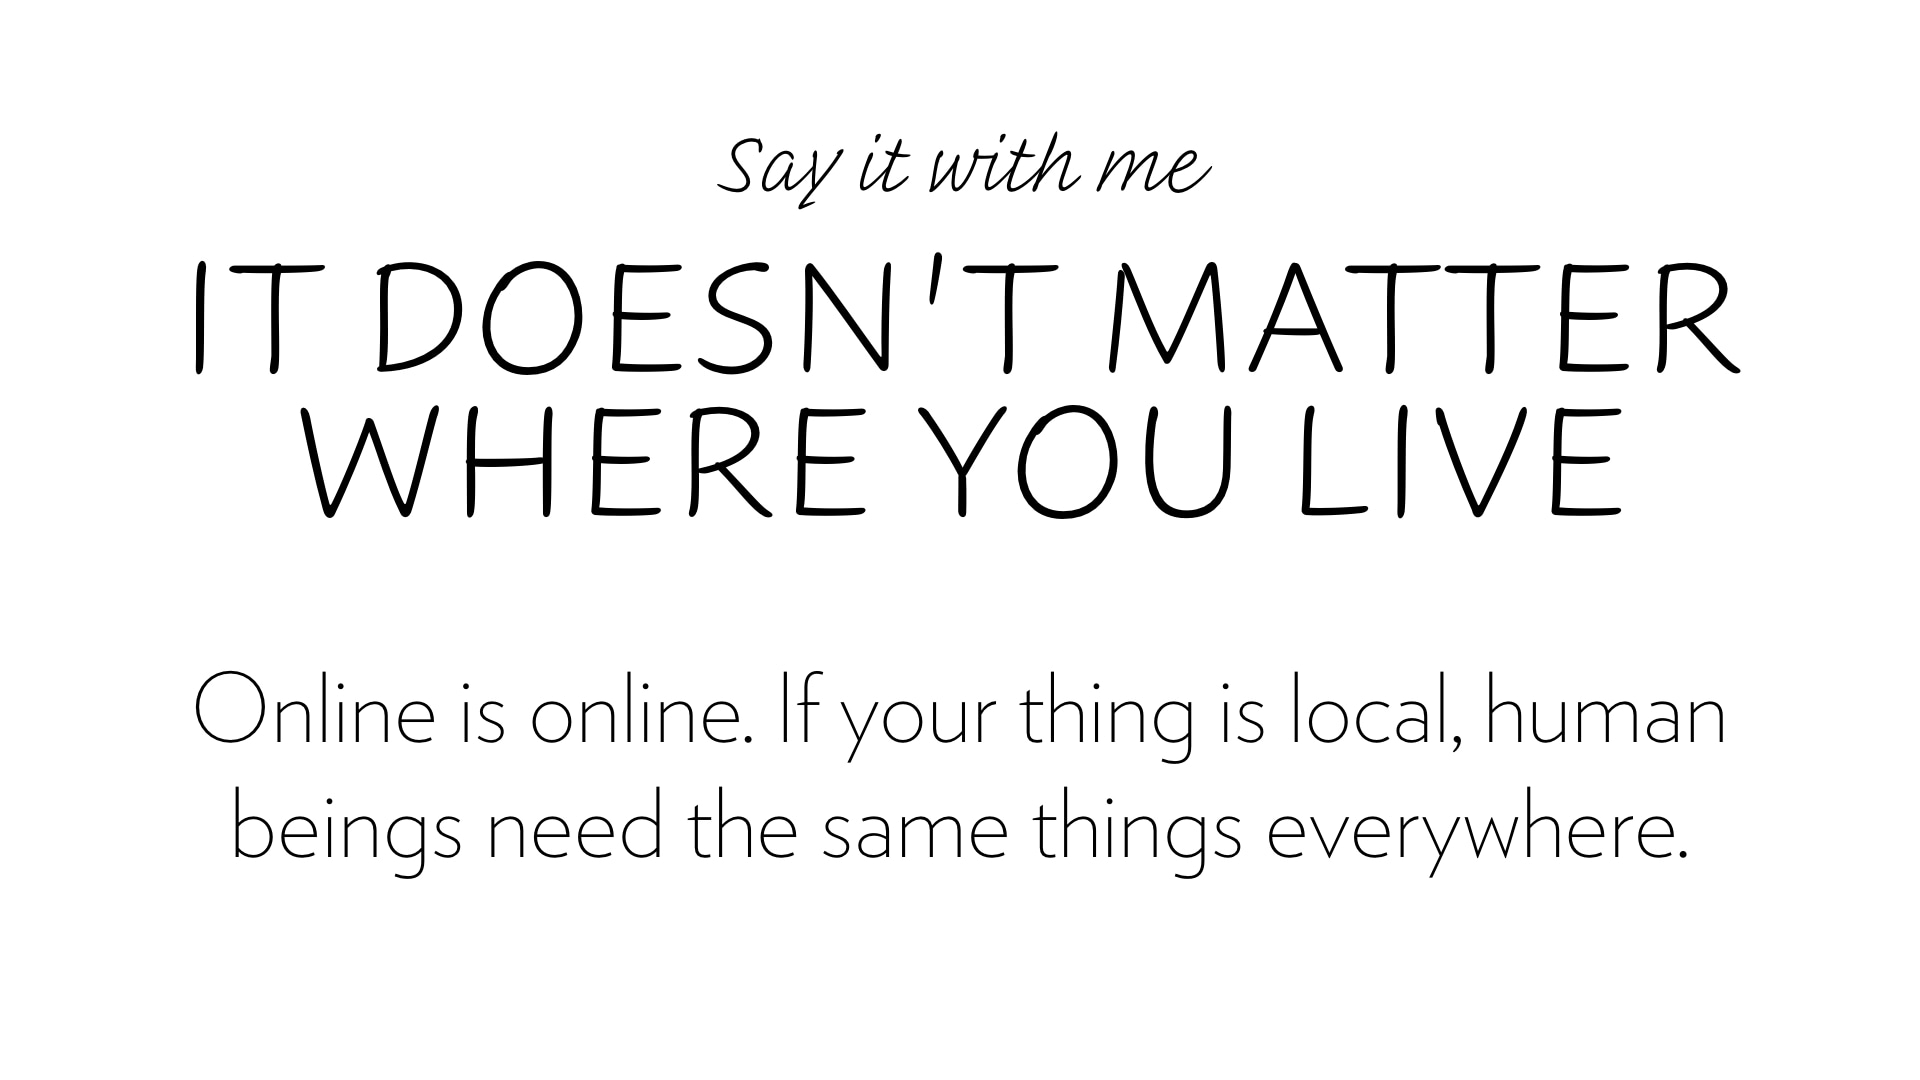 It doesn't matter where you live.